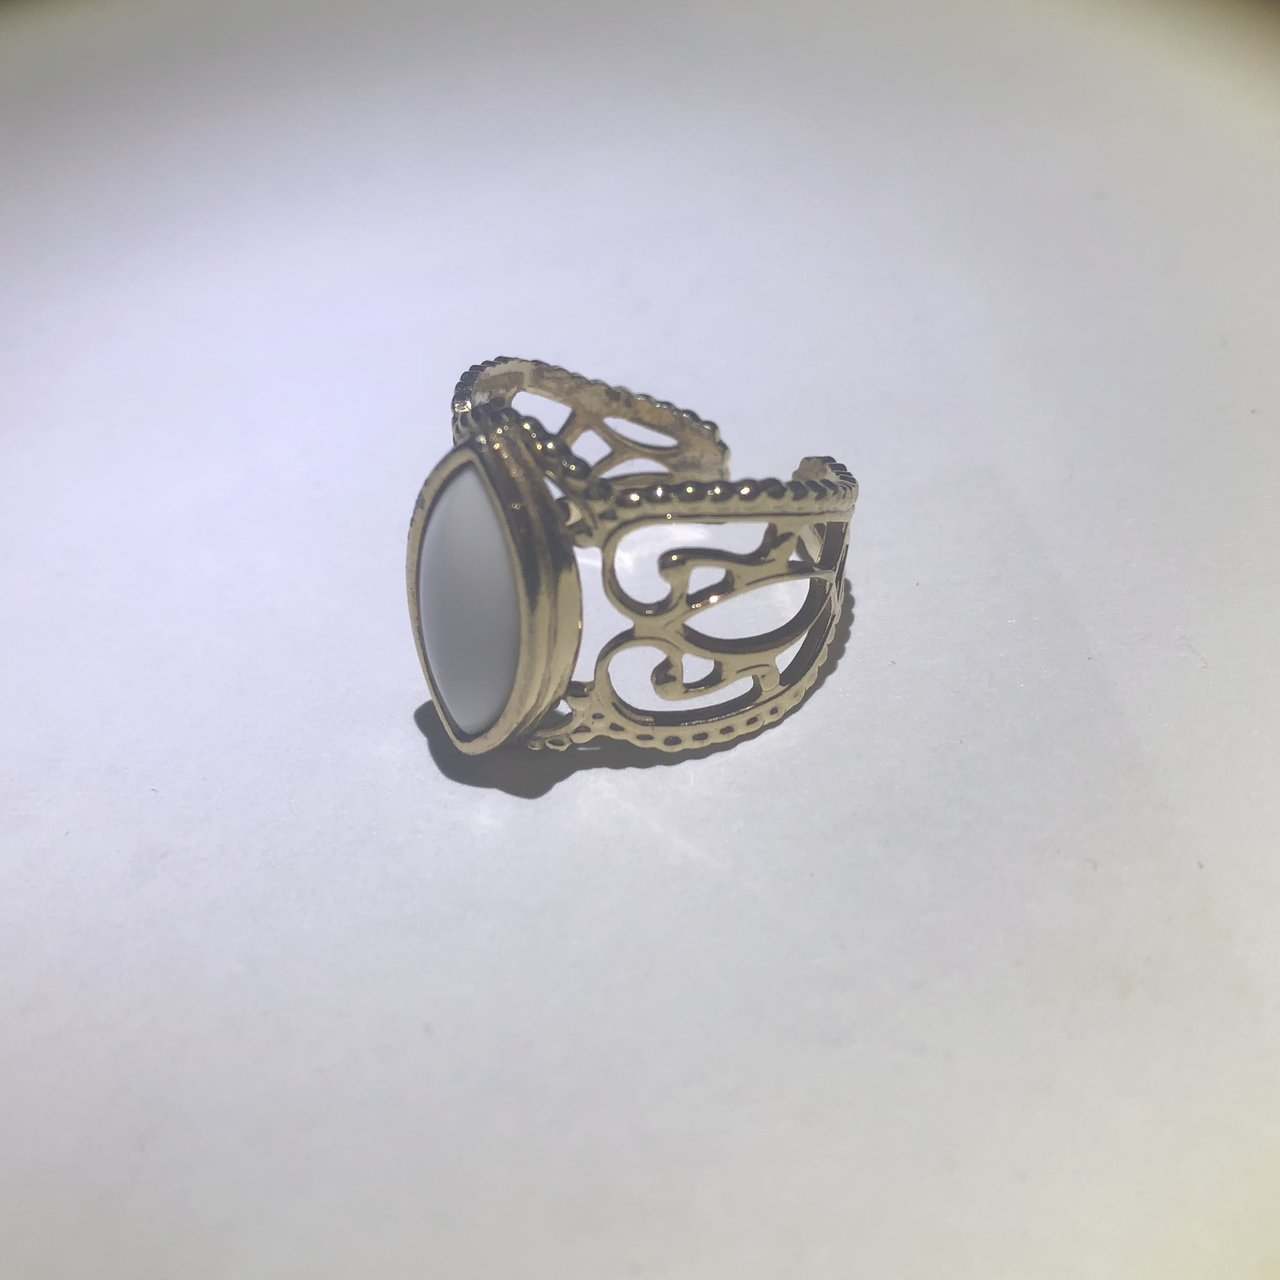 076d2597d37 Vintage 70 s coventry adjustable ring! Condition